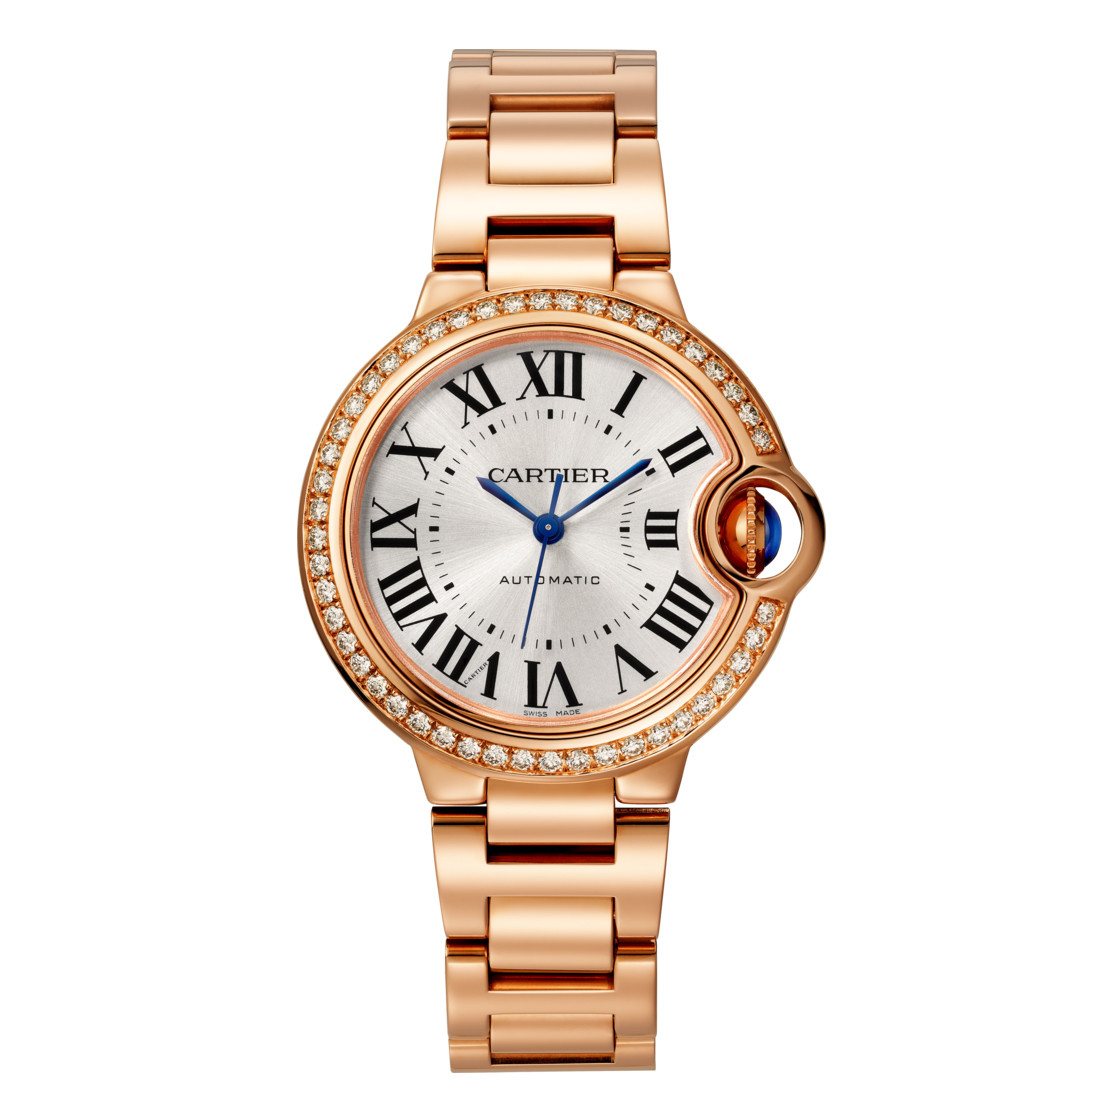 Ballon Bleu 33mm Rose Gold & Diamond (WJBB0036)